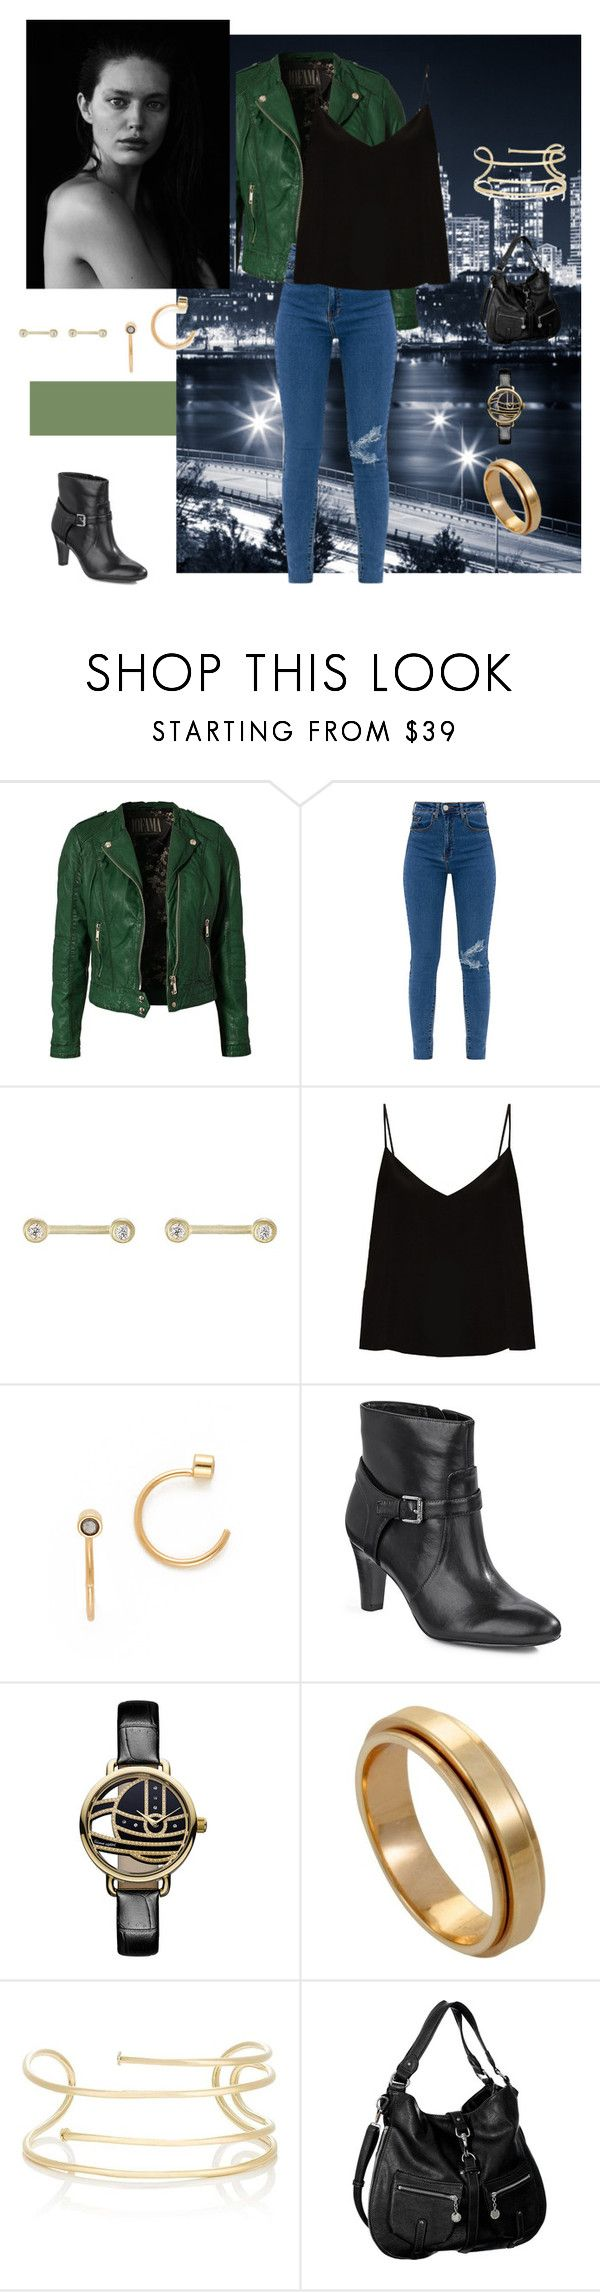 """""""Zee"""" by deejay-griego ❤ liked on Polyvore featuring Jofama, Tate, Raey, ZoÃ« Chicco, Lauren Ralph Lauren, Vivienne Westwood, Piaget, Jennifer Fisher and Melie Bianco"""